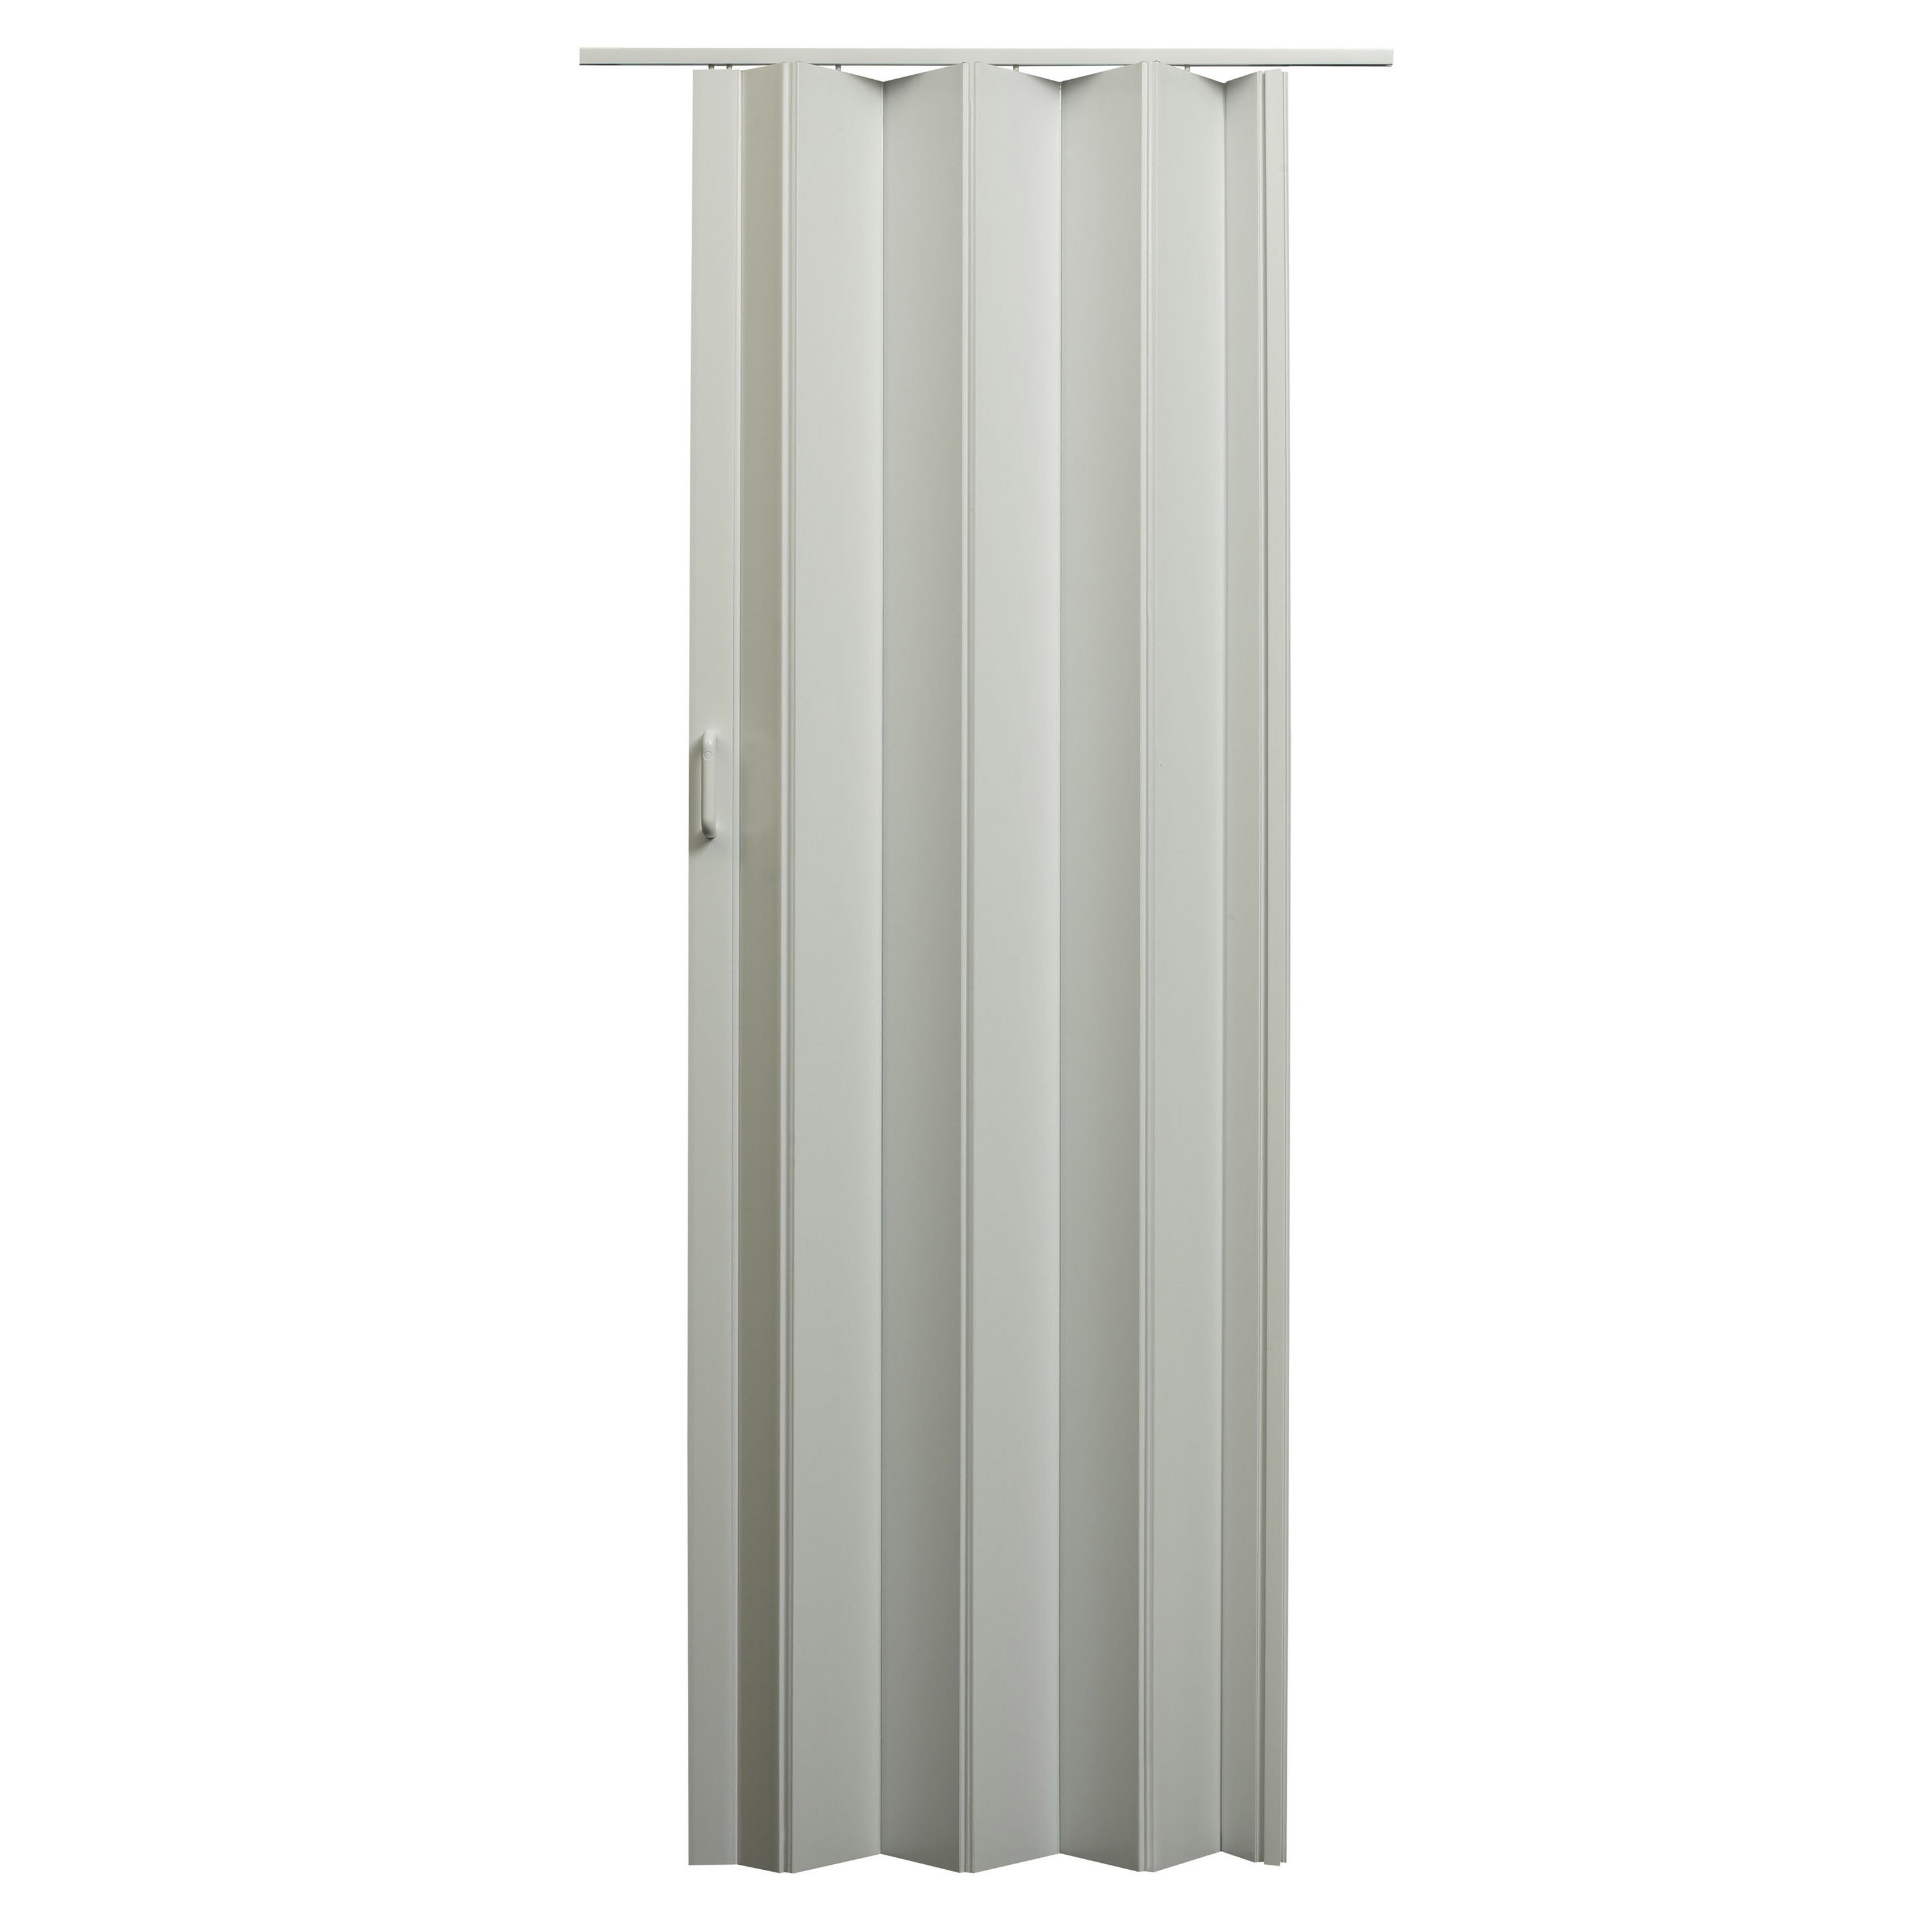 Encore White Folding Door - Free Shipping Today - Overstock - 17617795